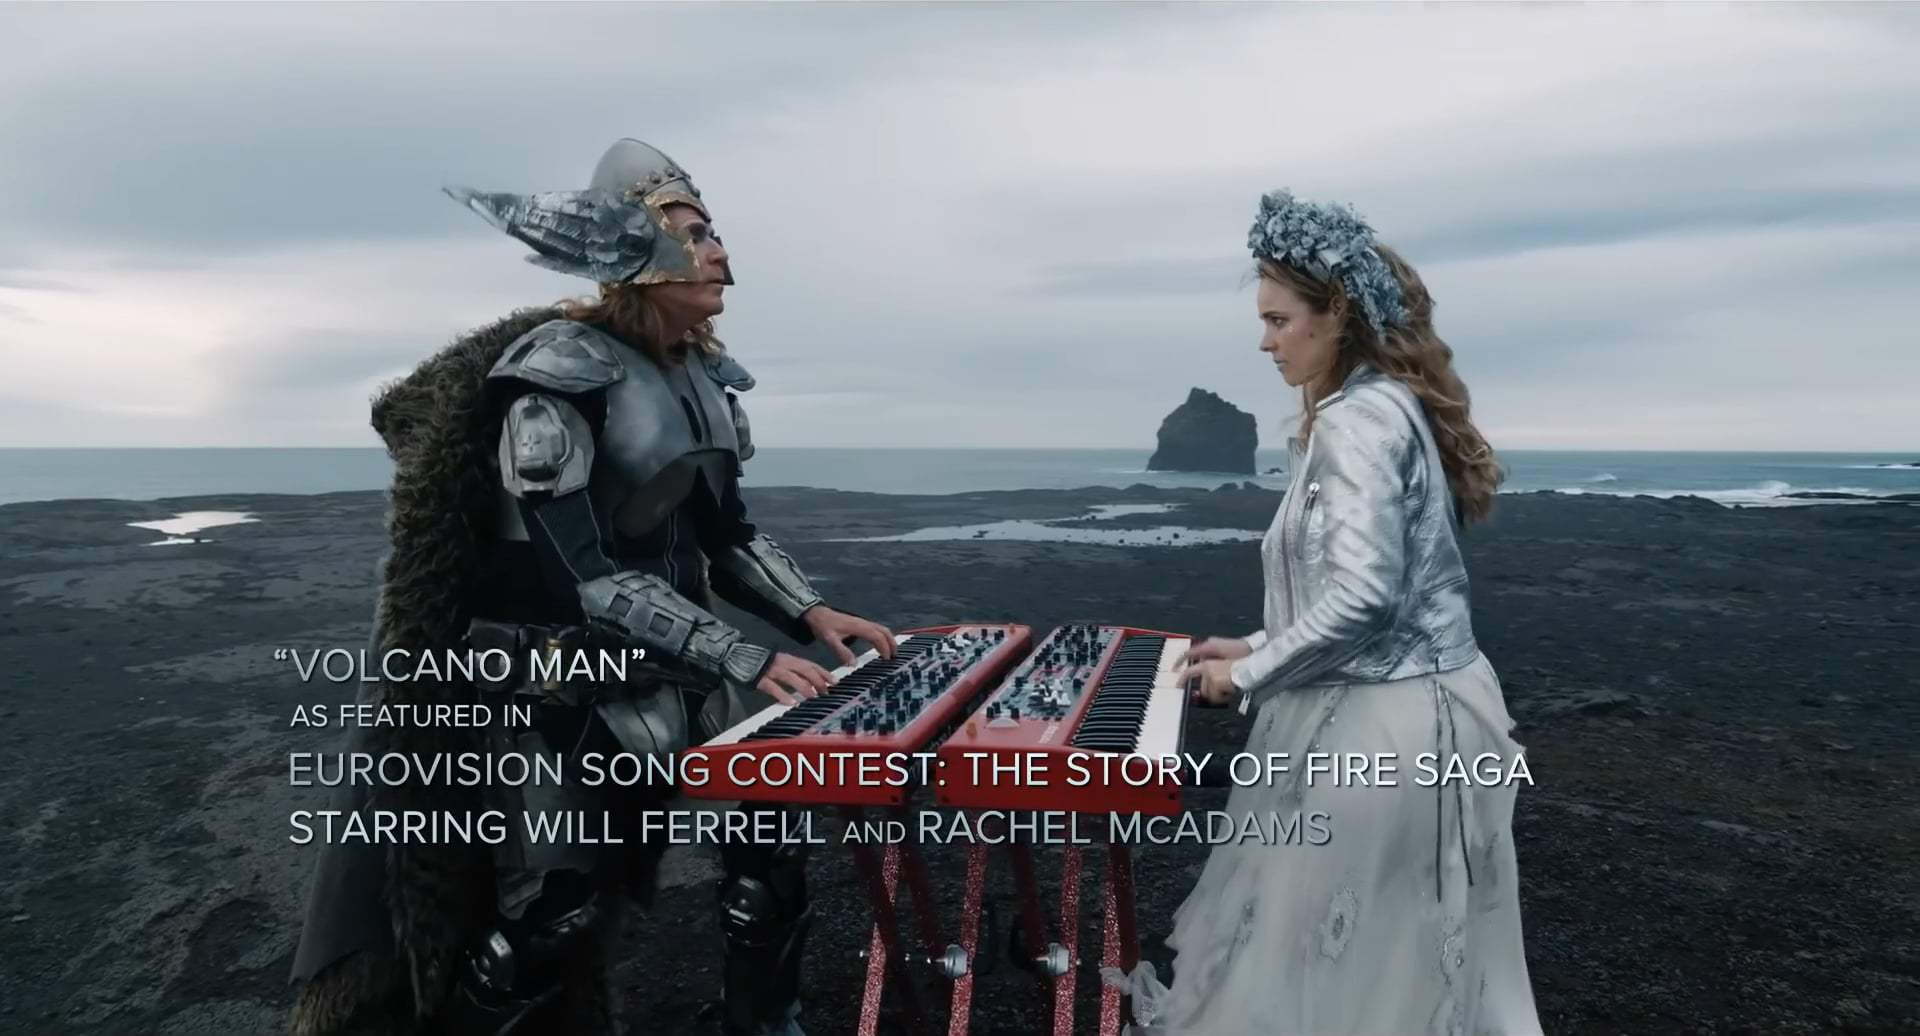 Eurovision Song Contest: The Story of Fire Saga Volcano Man Trailer (2020)